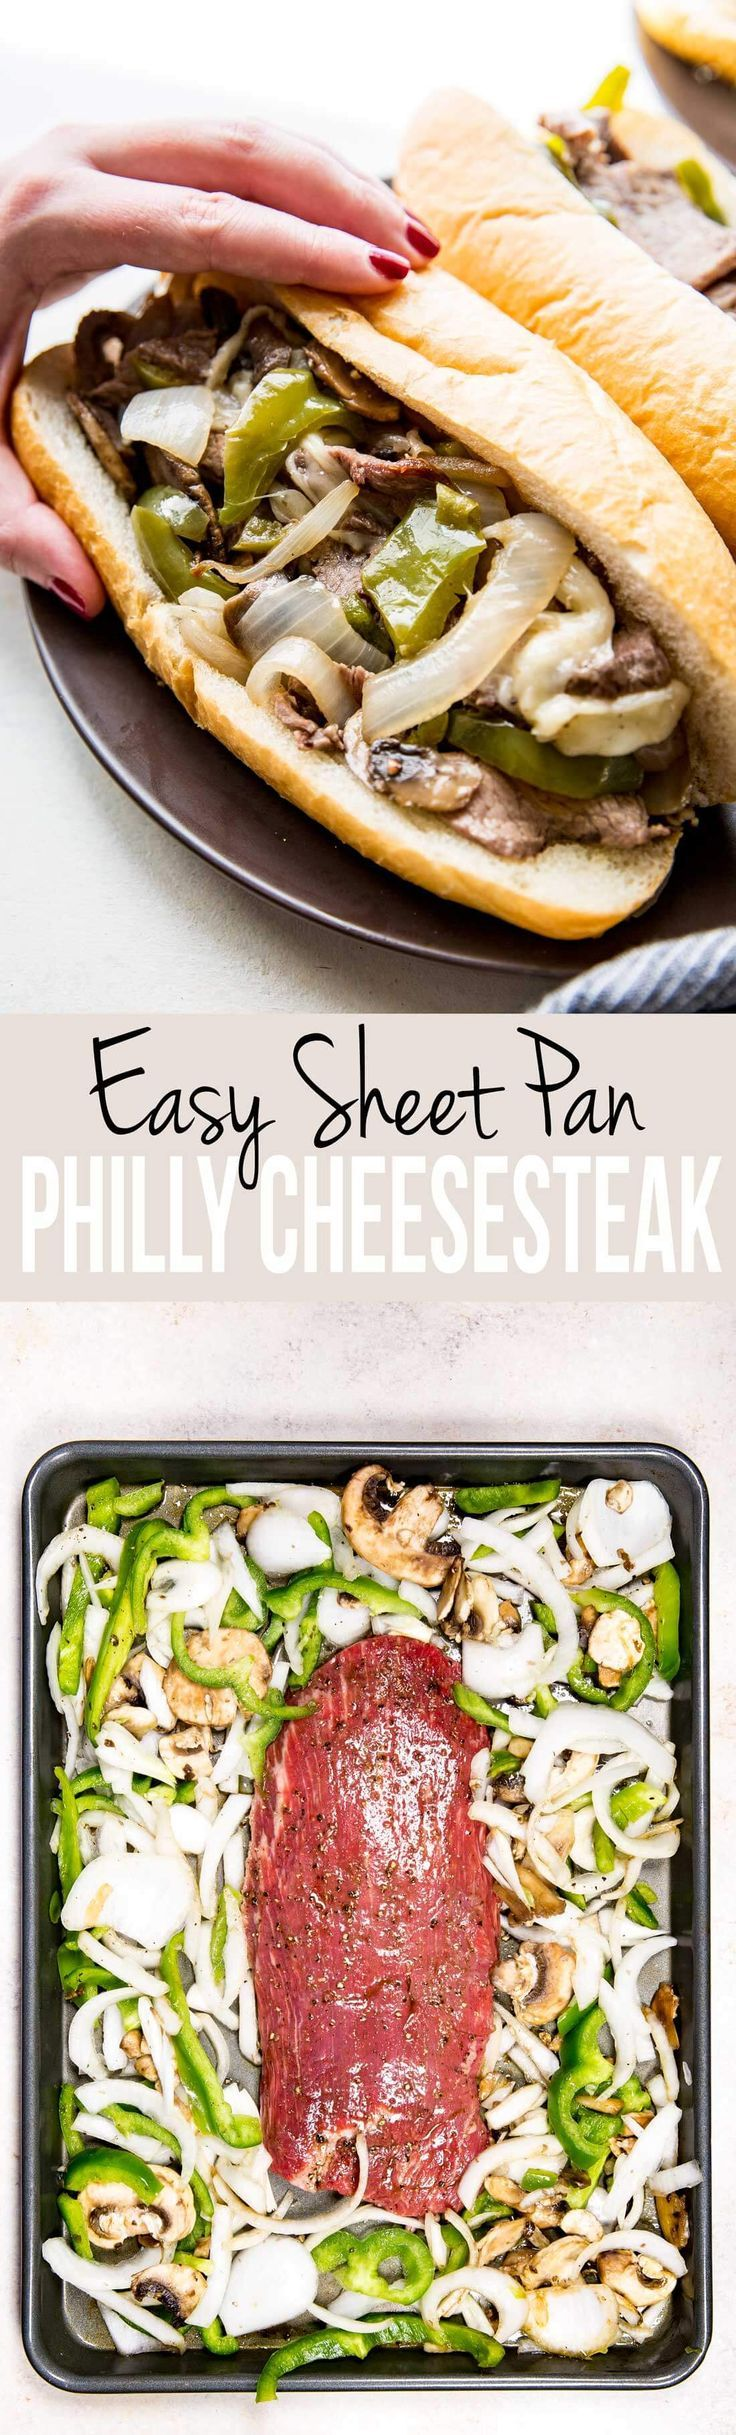 Easy, flavorful, and oh so fun! We love this Sheet Pan Philly Cheesesteak